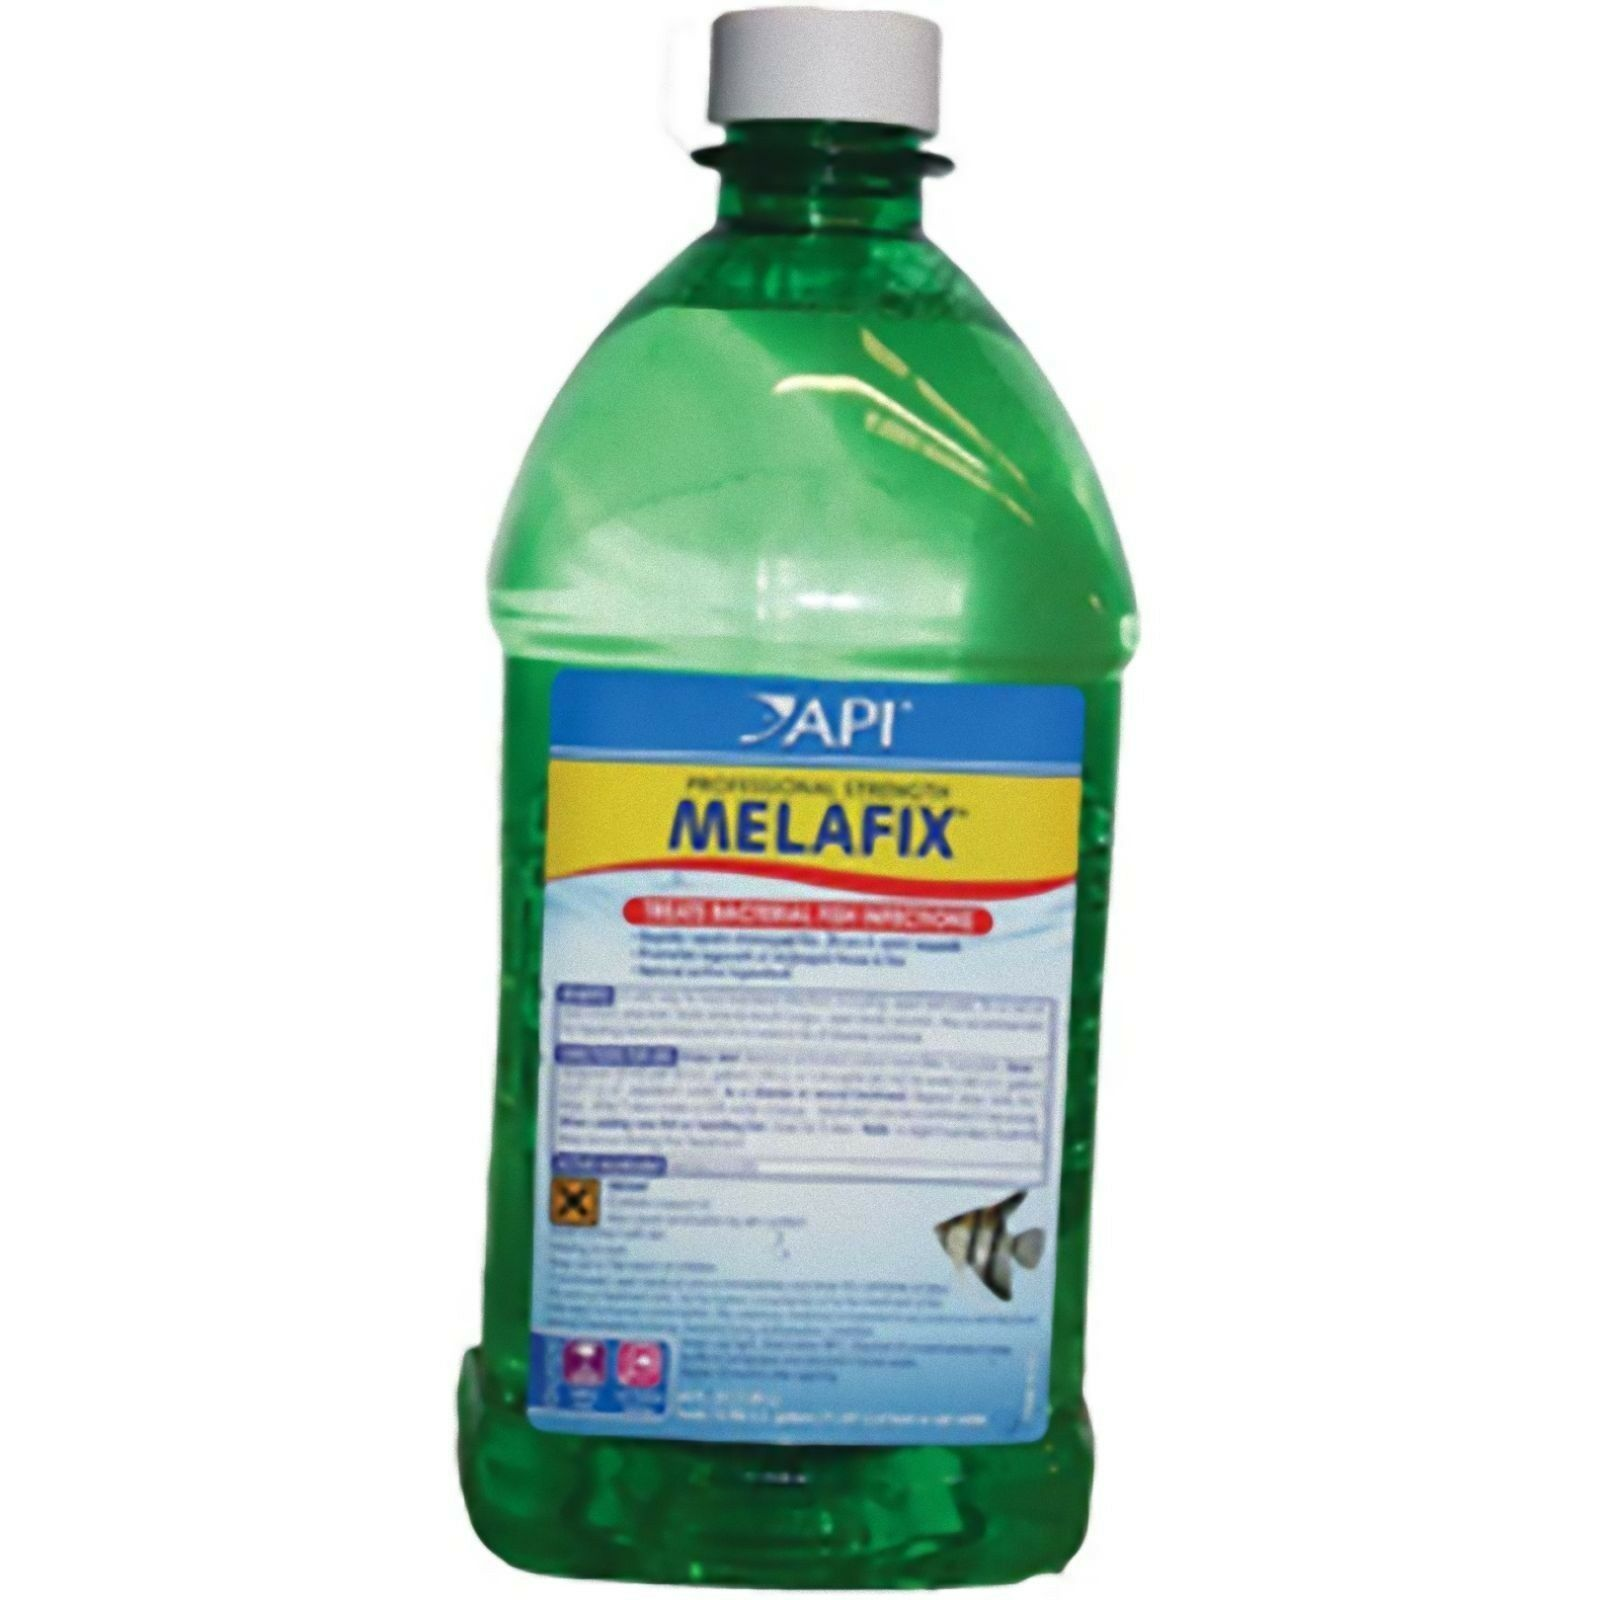 API Melafix 1.9l Tropical Fish Treatment Medication Treats Ulcers fungus